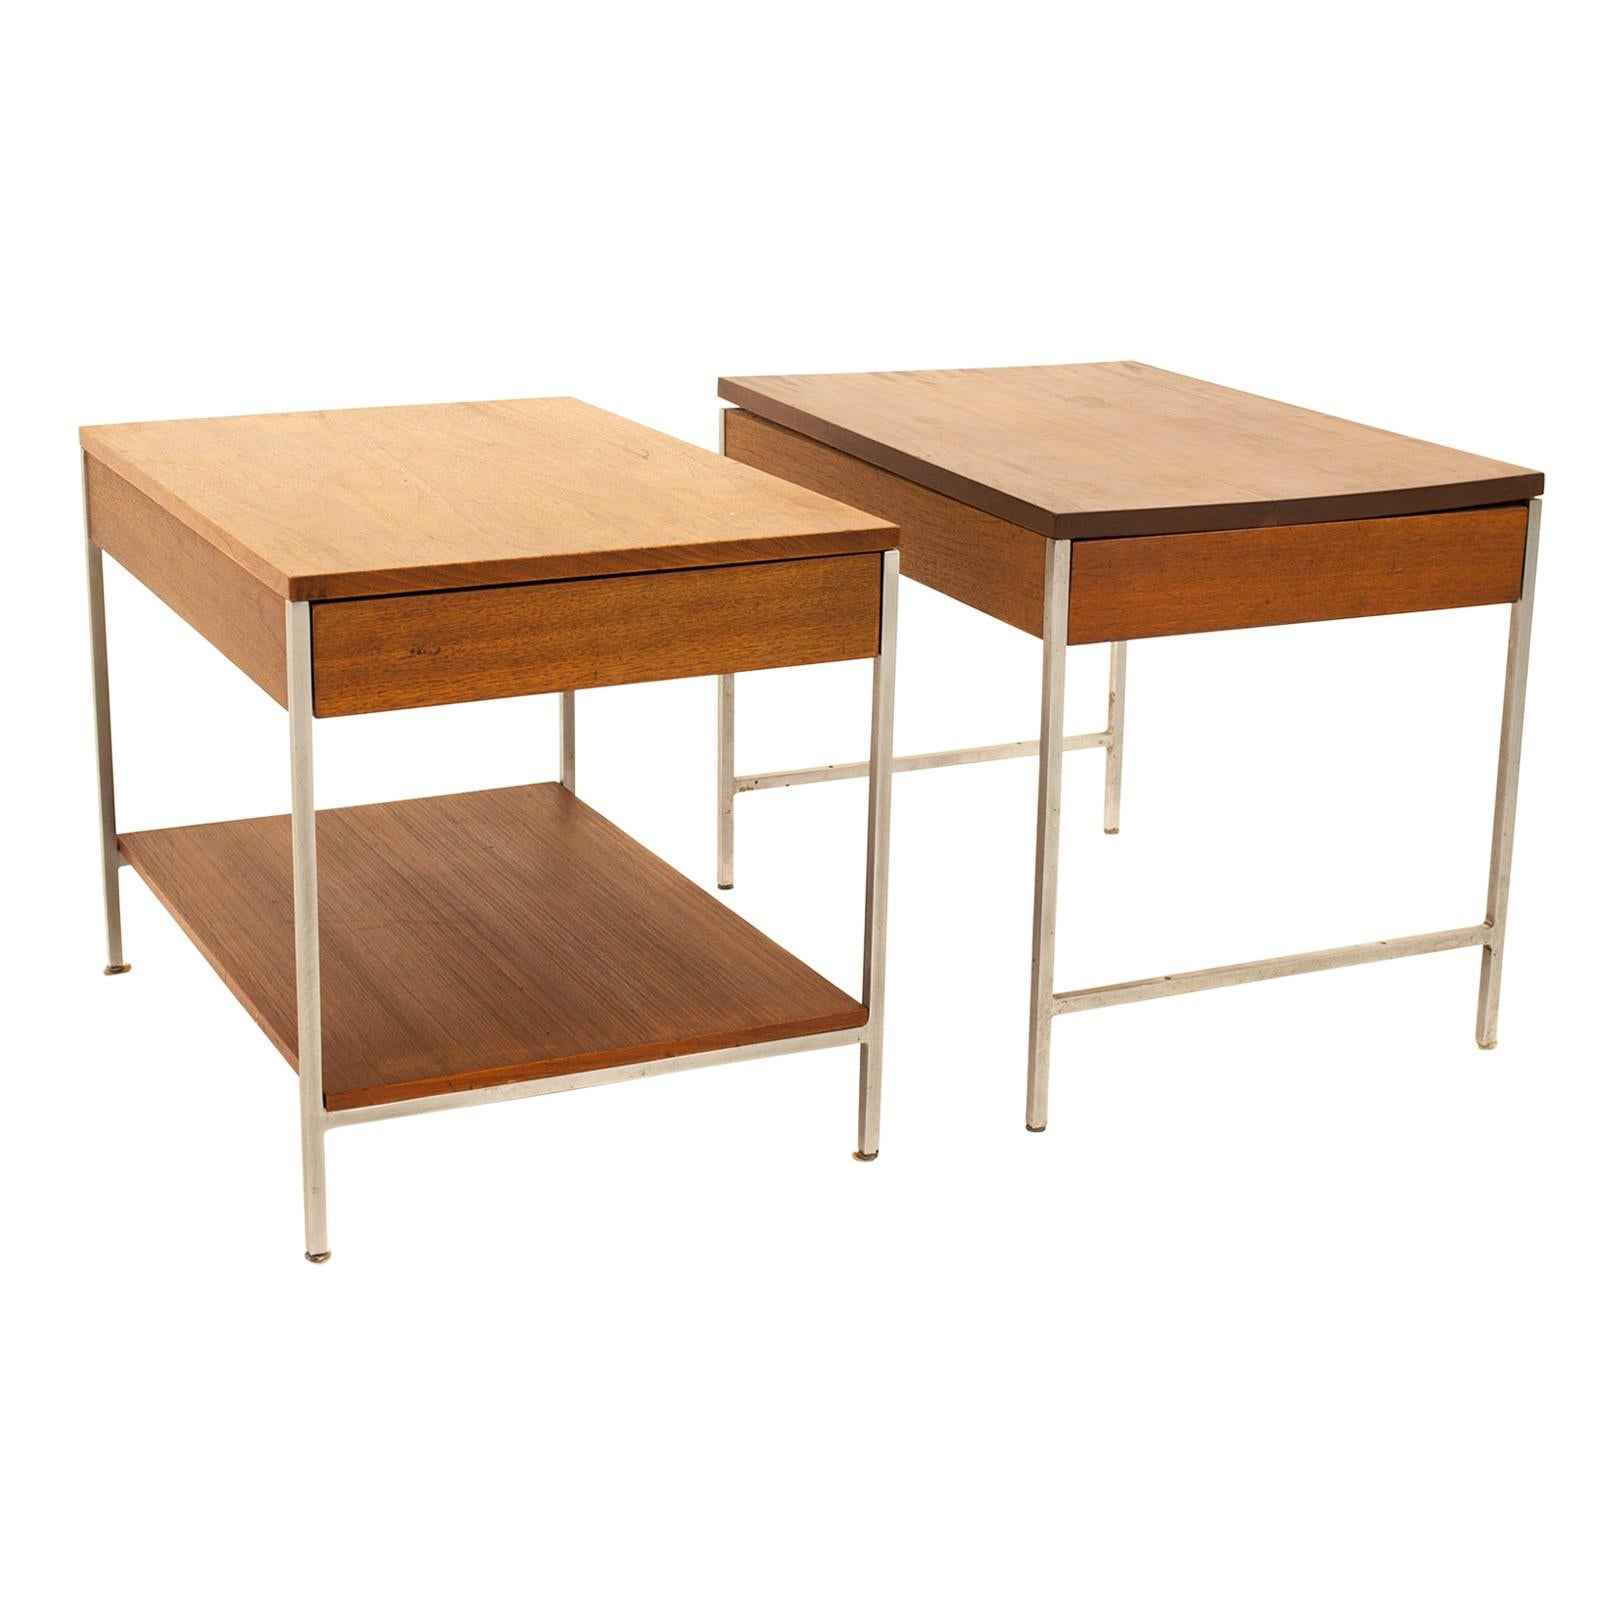 George Nelson for Herman Miller Mid Century Chrome and Walnut End Tables, Pair